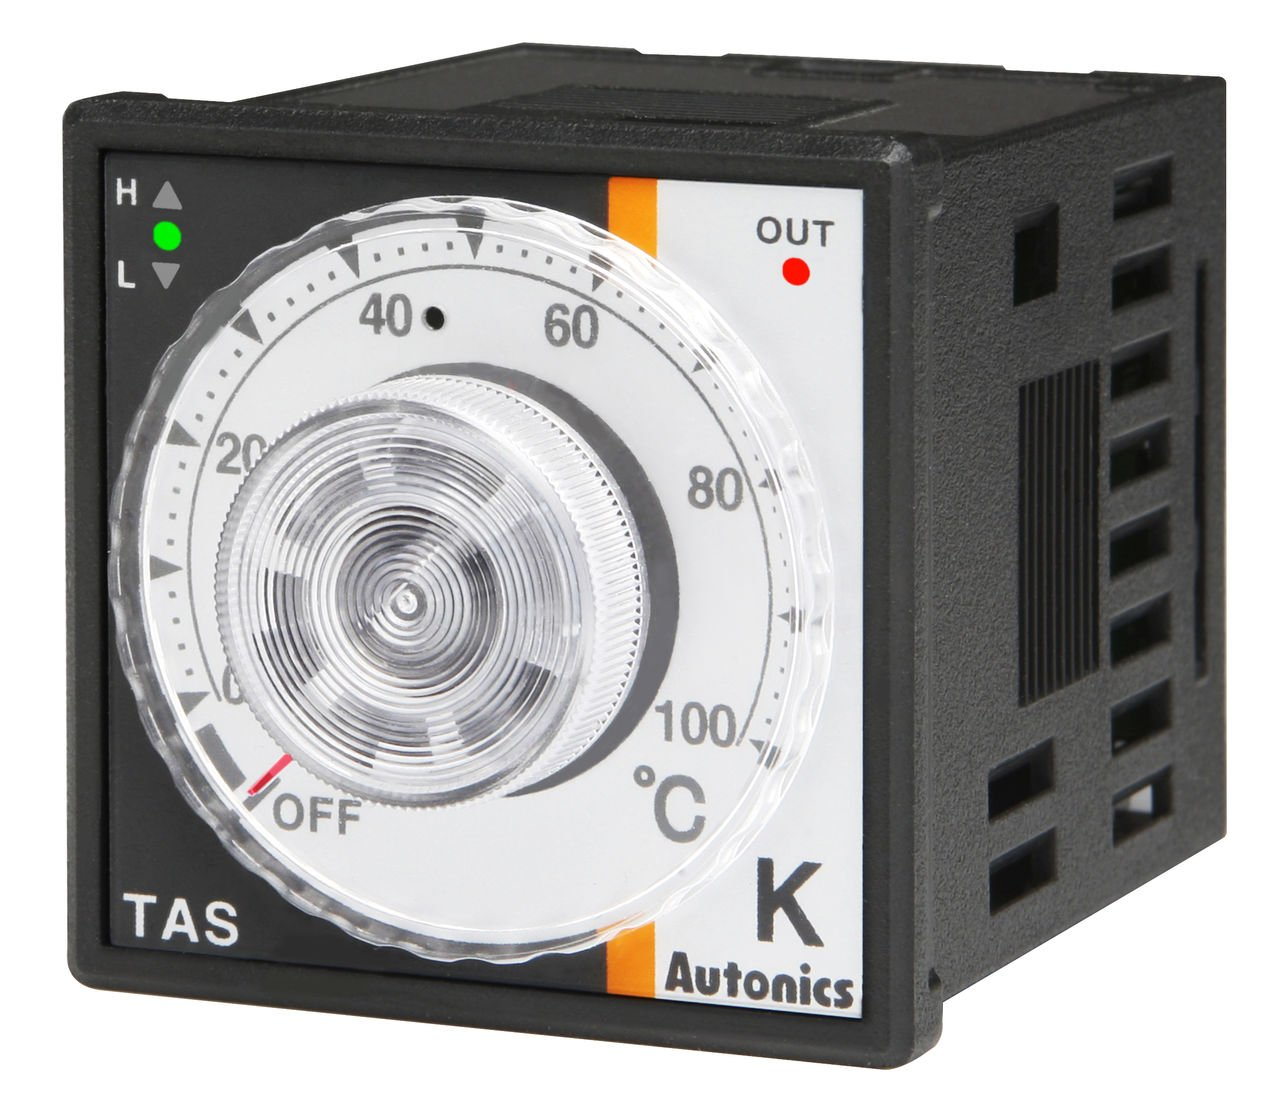 Autonics TAS-B4SJ4F Temp Control, 1/16 DIN, Analog, PID Control, SSR Output, J Thermocouple, 32 to 752 F, 100-240 VAC by Autonics USA, Inc